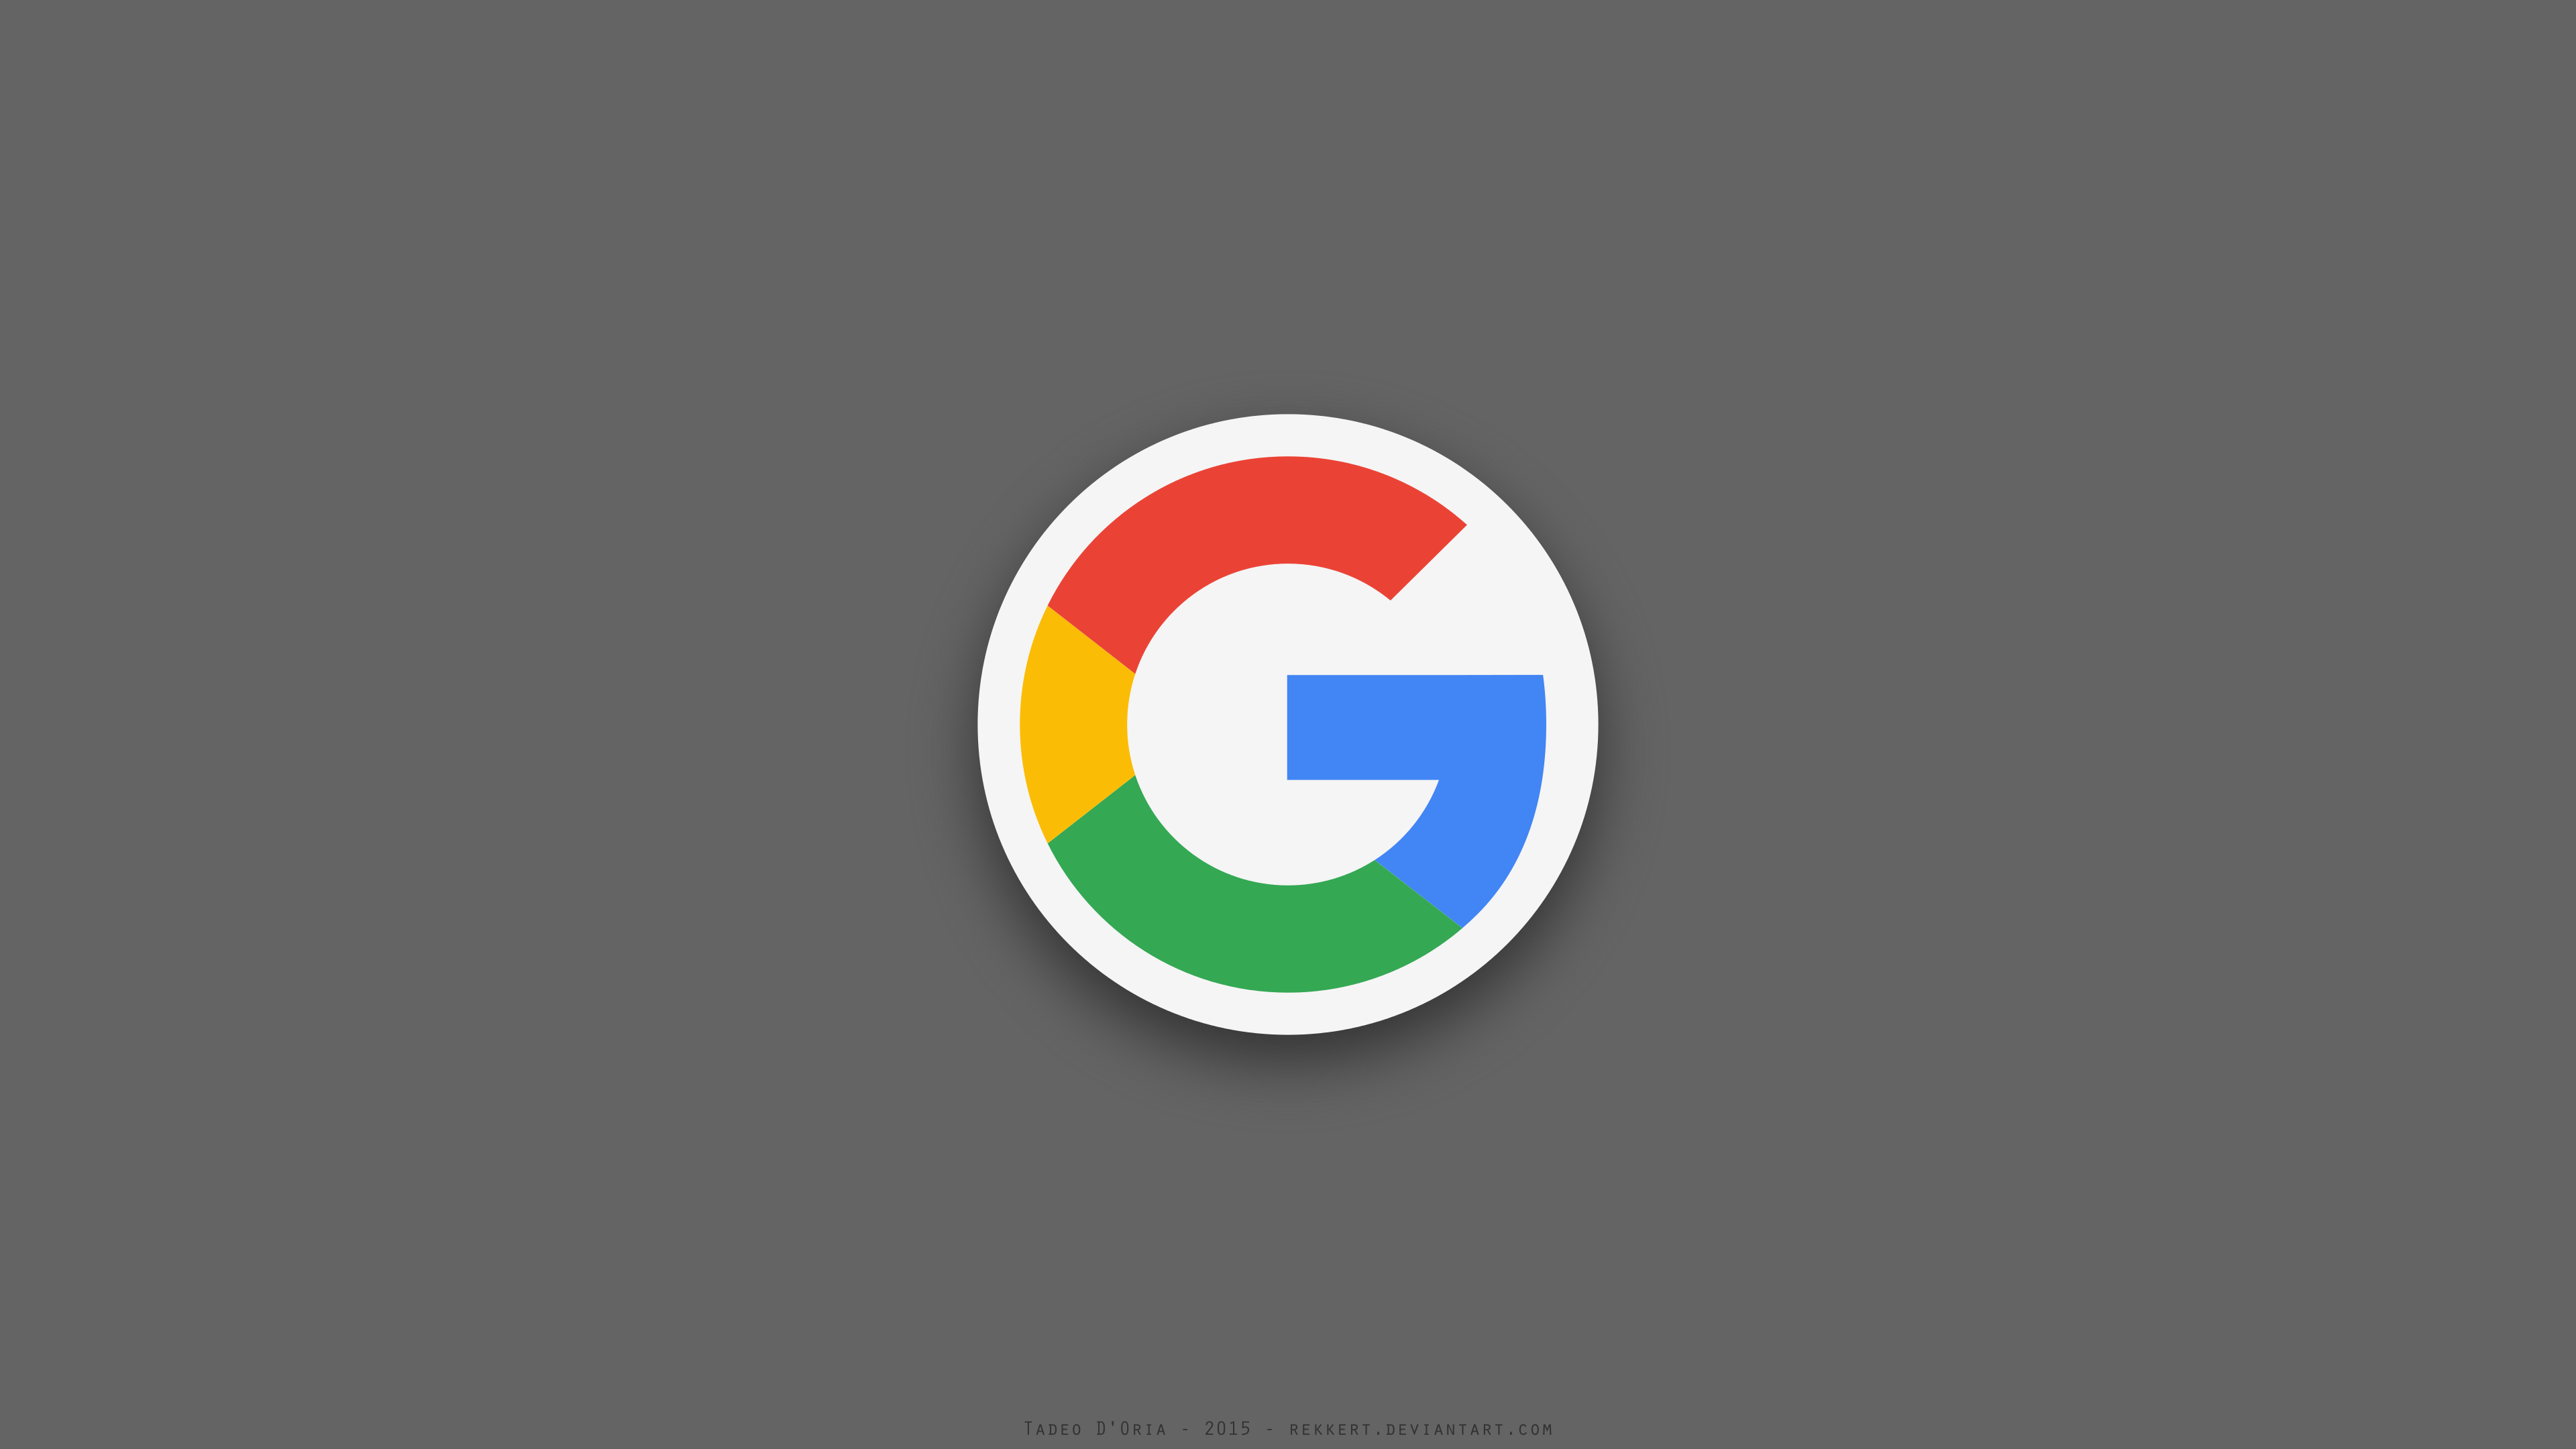 HQ Definition Google Wallpapers, High Quality, BsnSCB Gallery